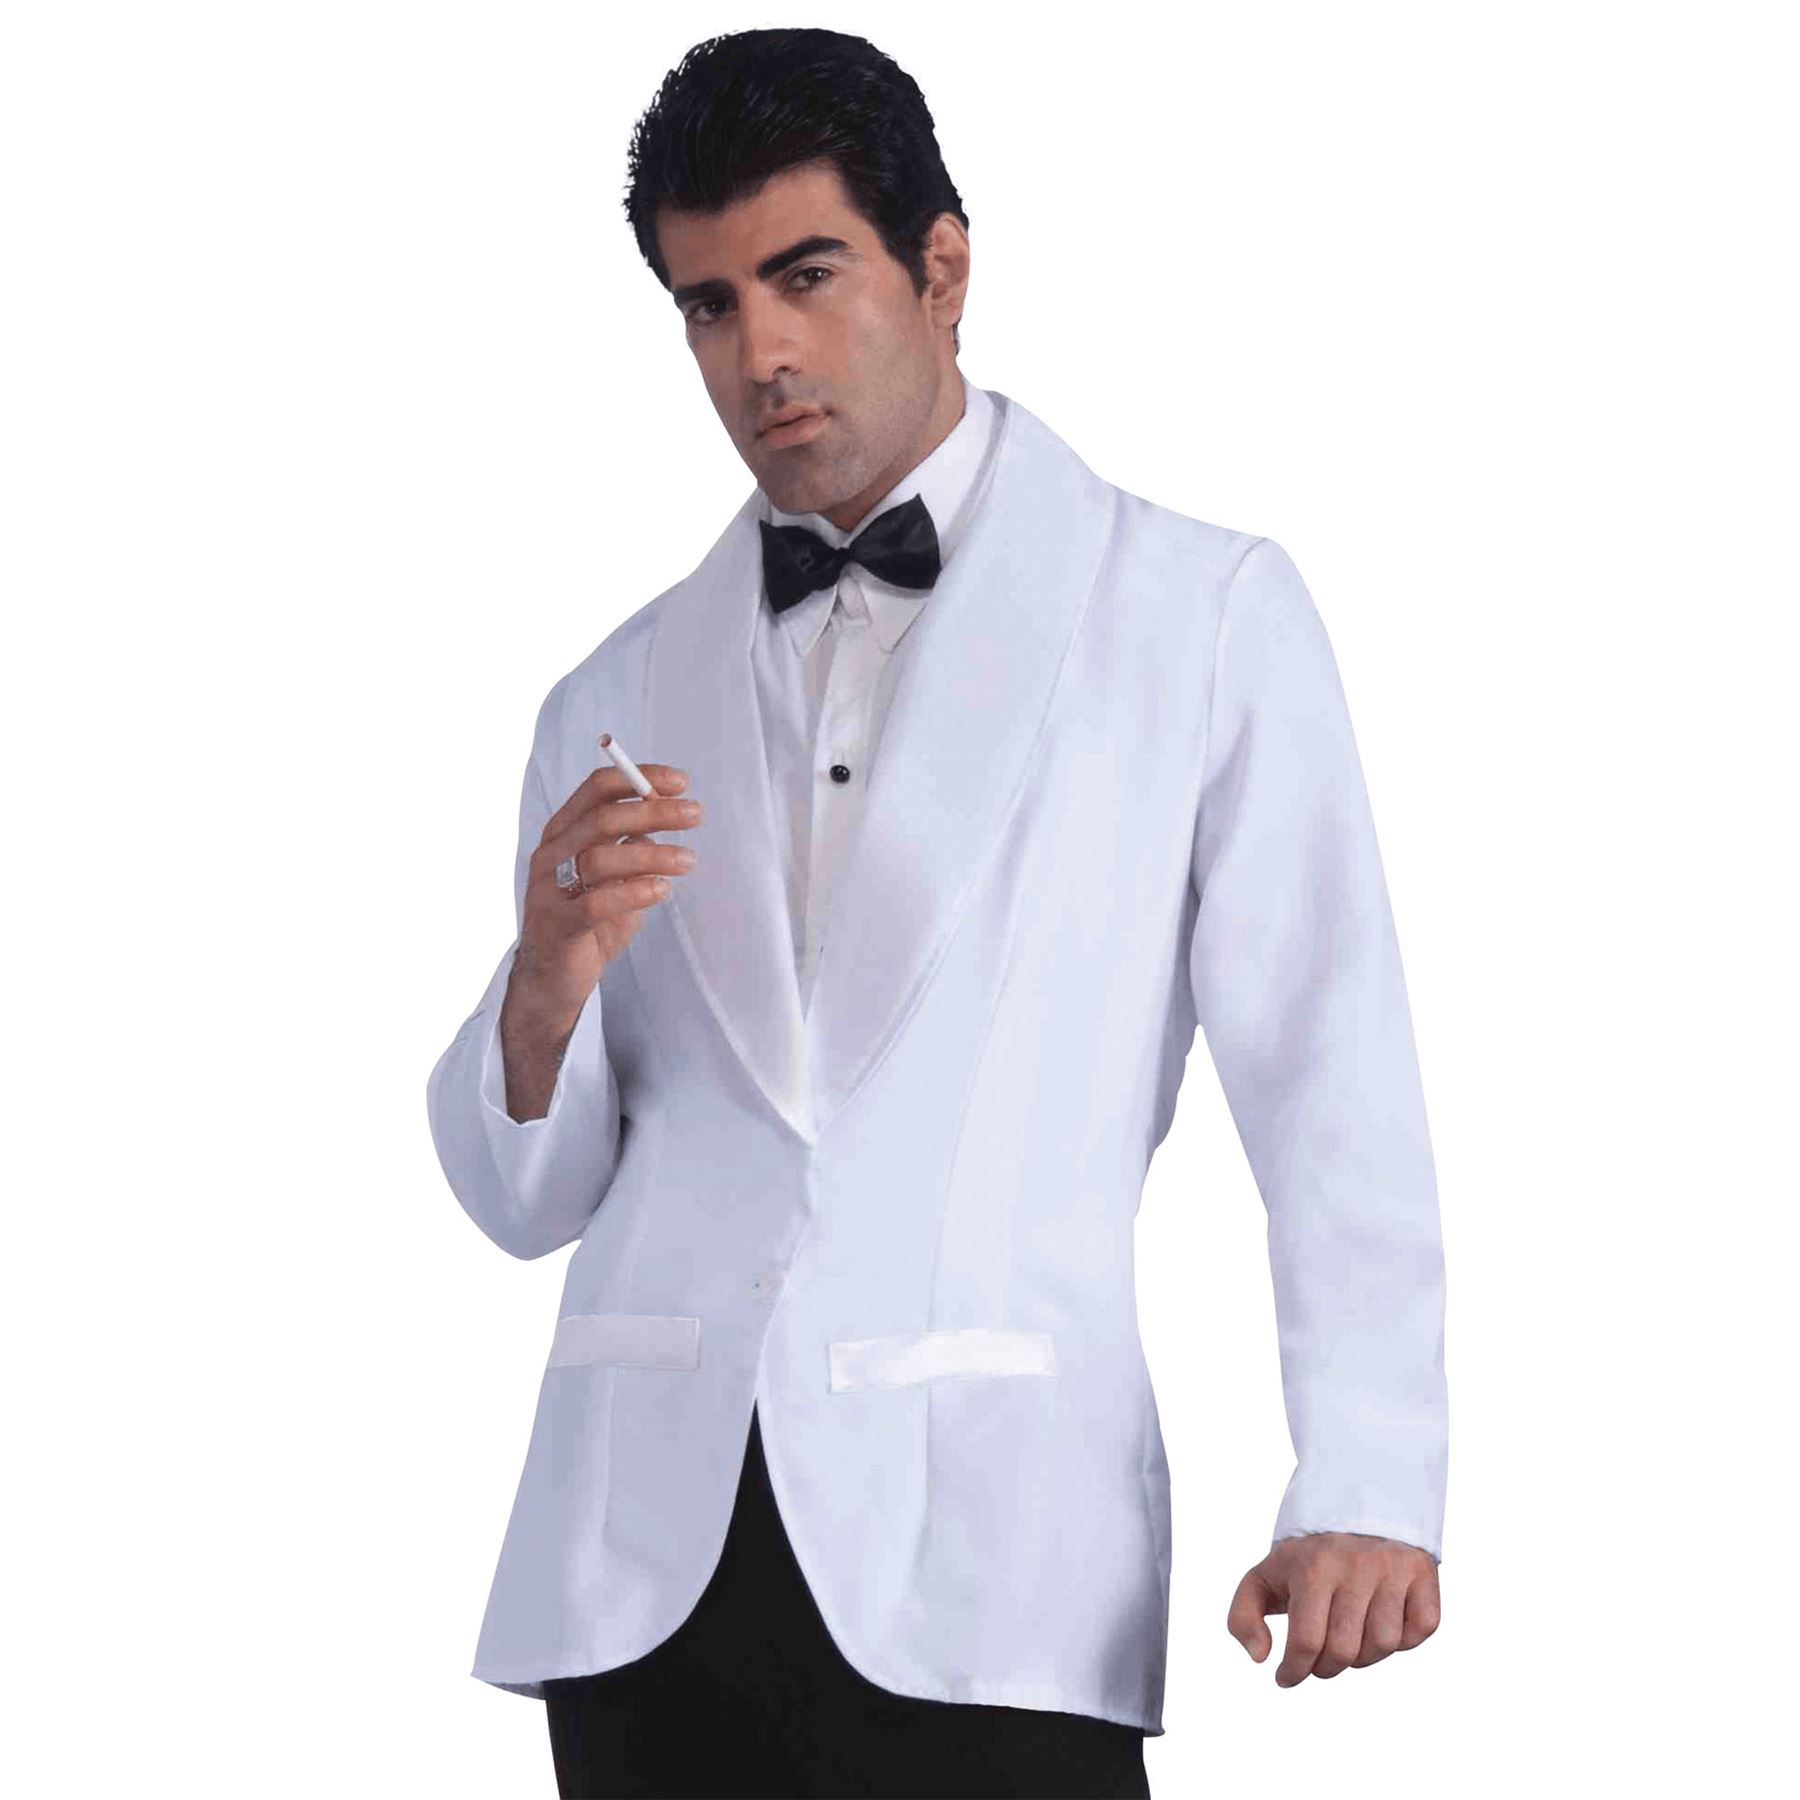 Details About Mens Formal White Jacket Fancy Dress Costume James Bond Gangster Outfit New